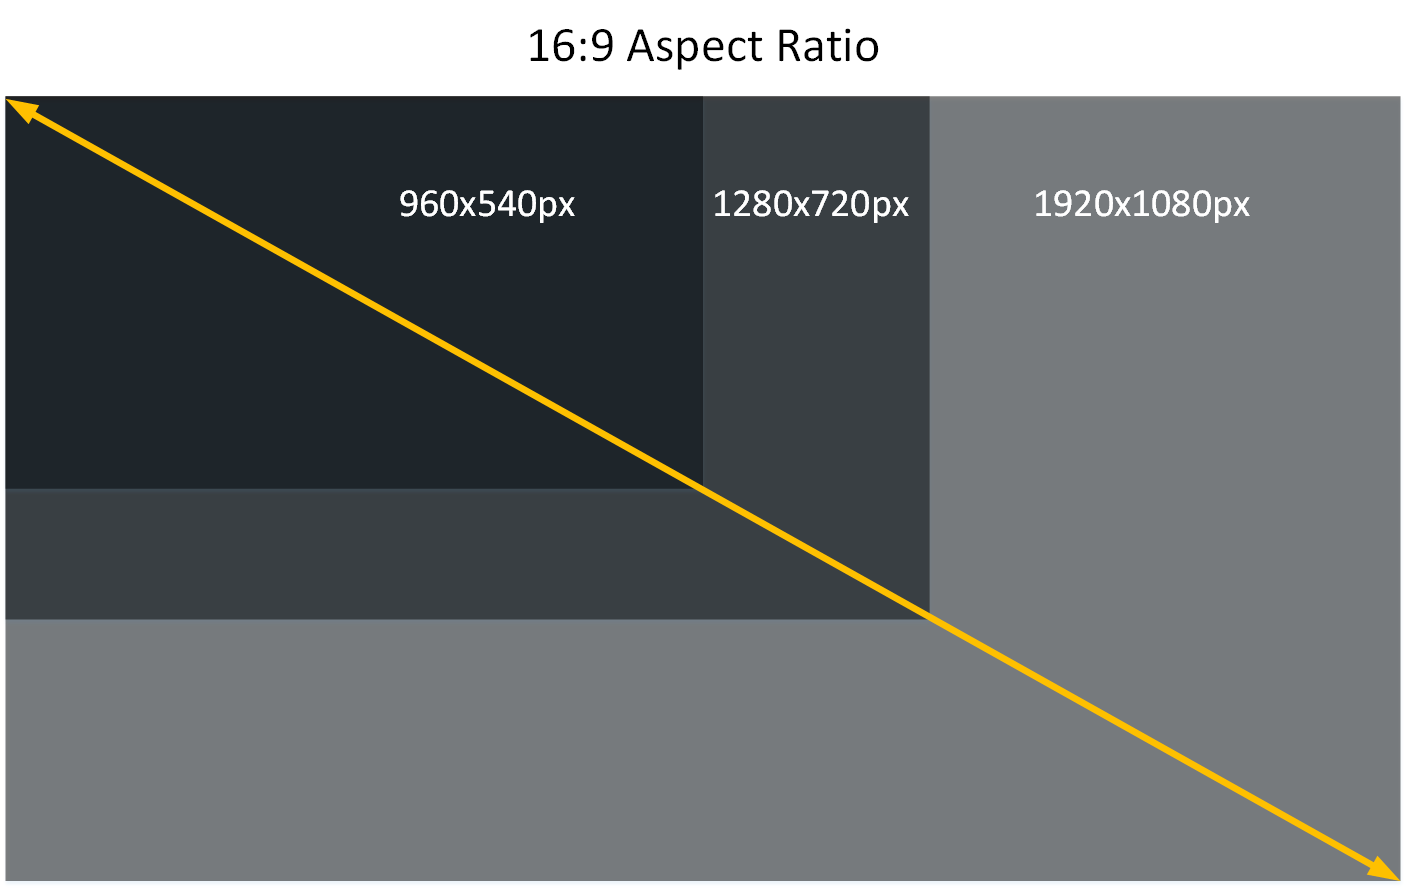 Digital Signage Content Aspect Ratio 16:9